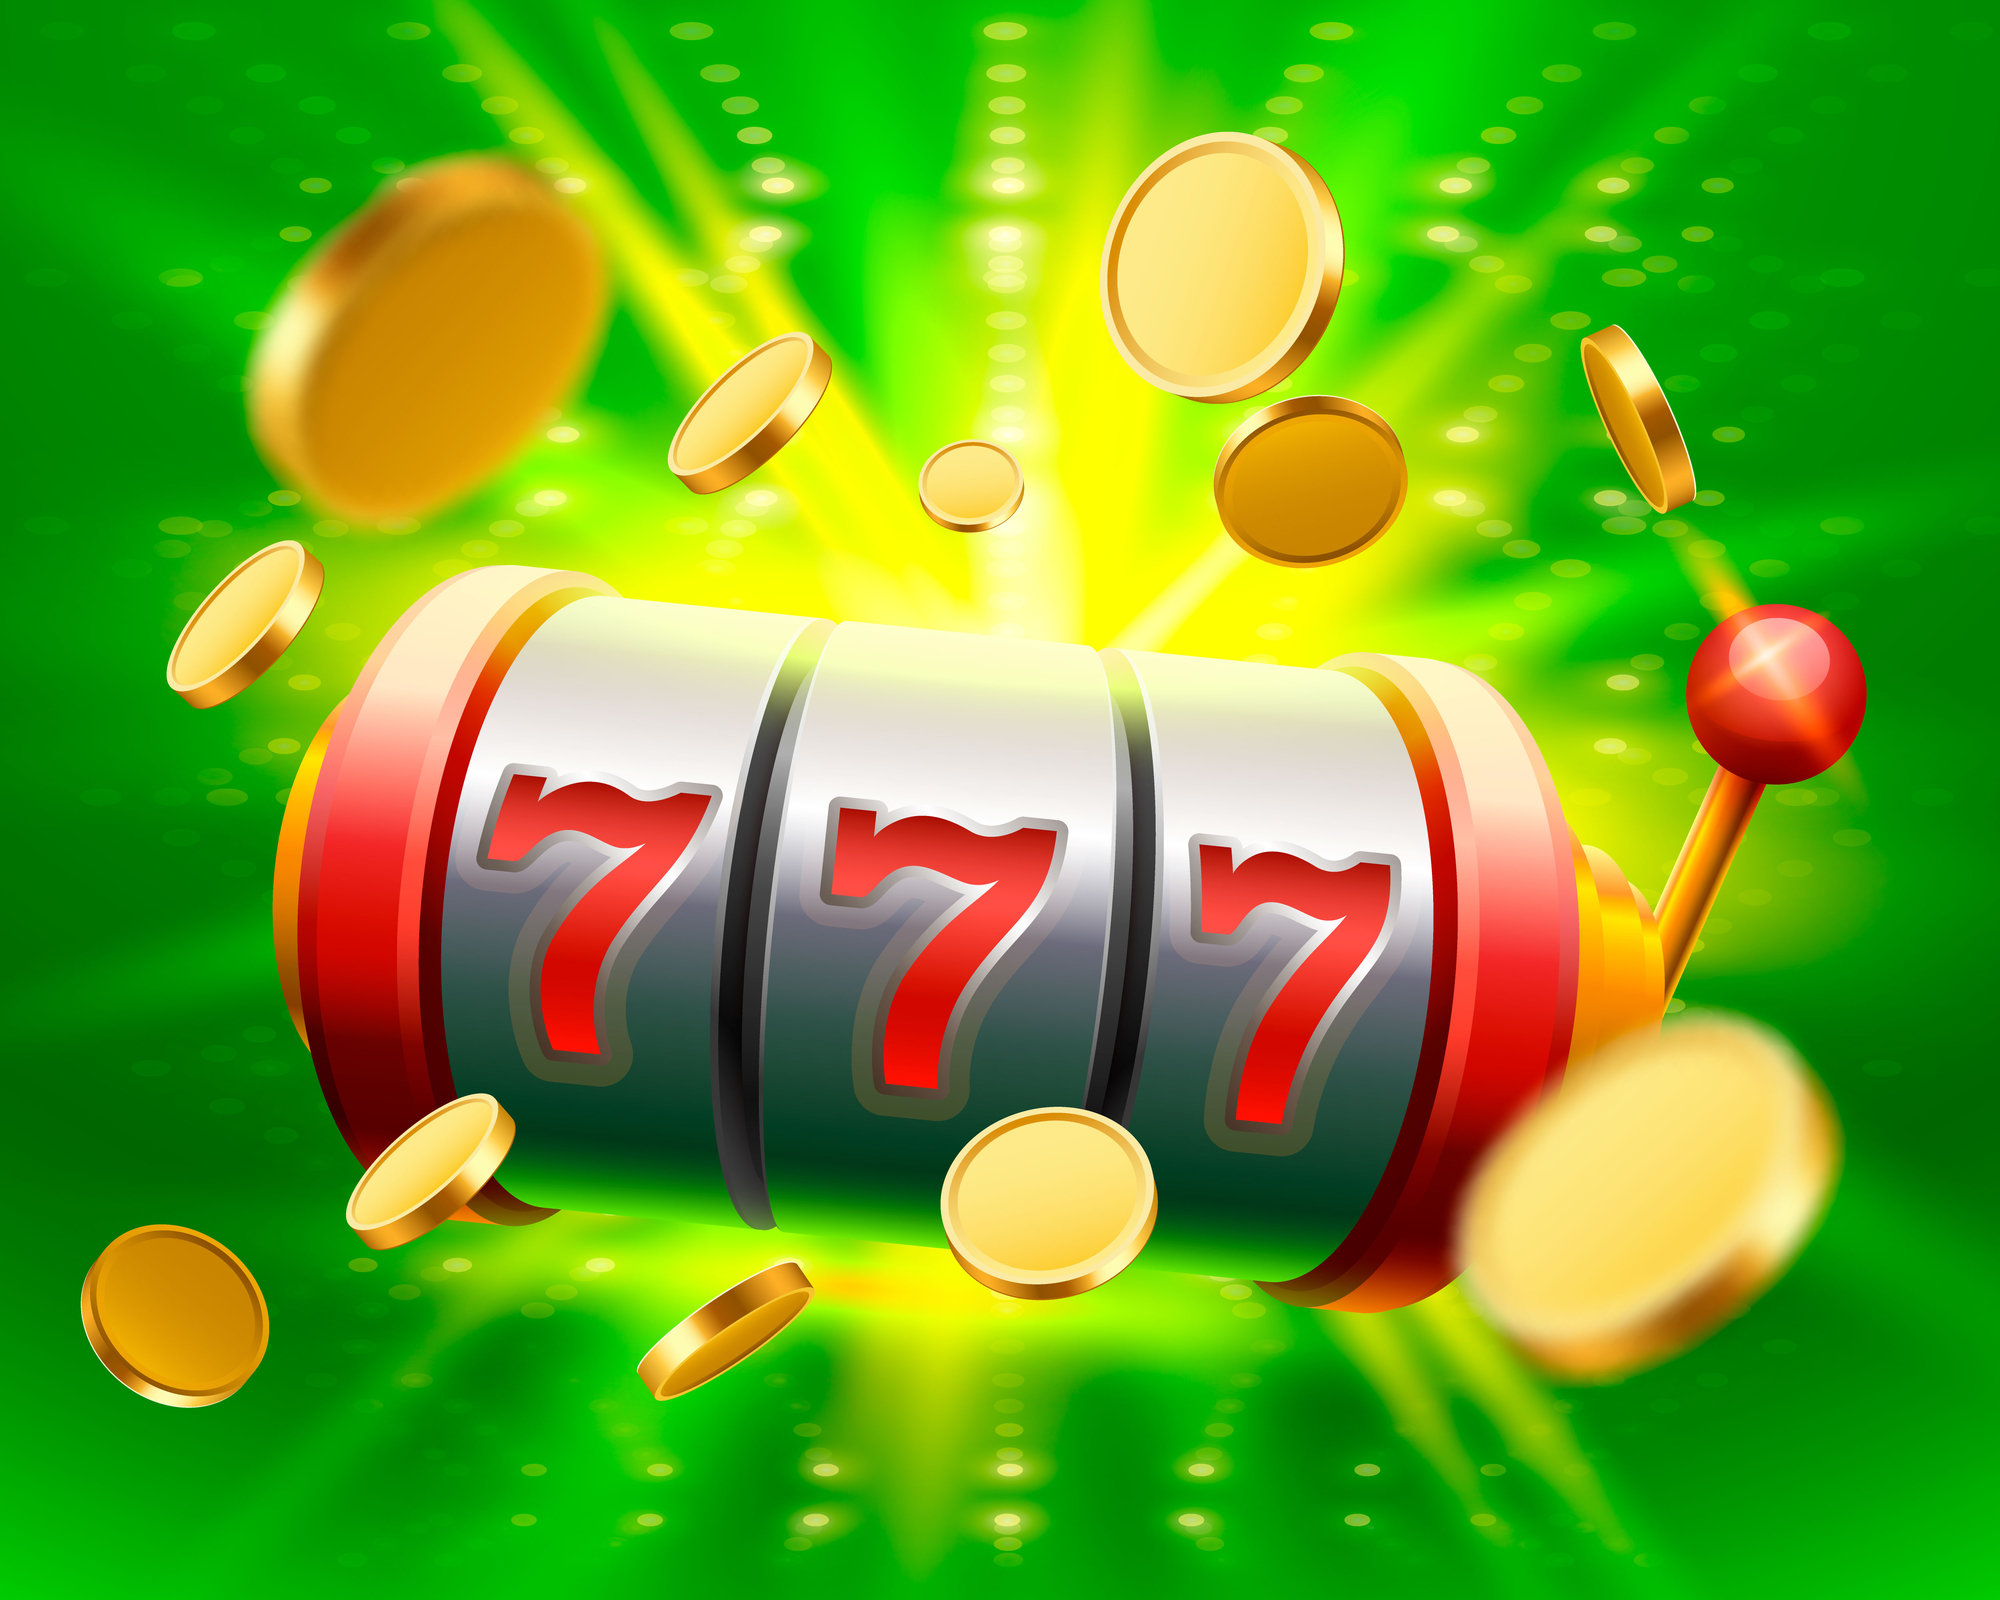 Big win slots 777 banner casino. Vector illustration